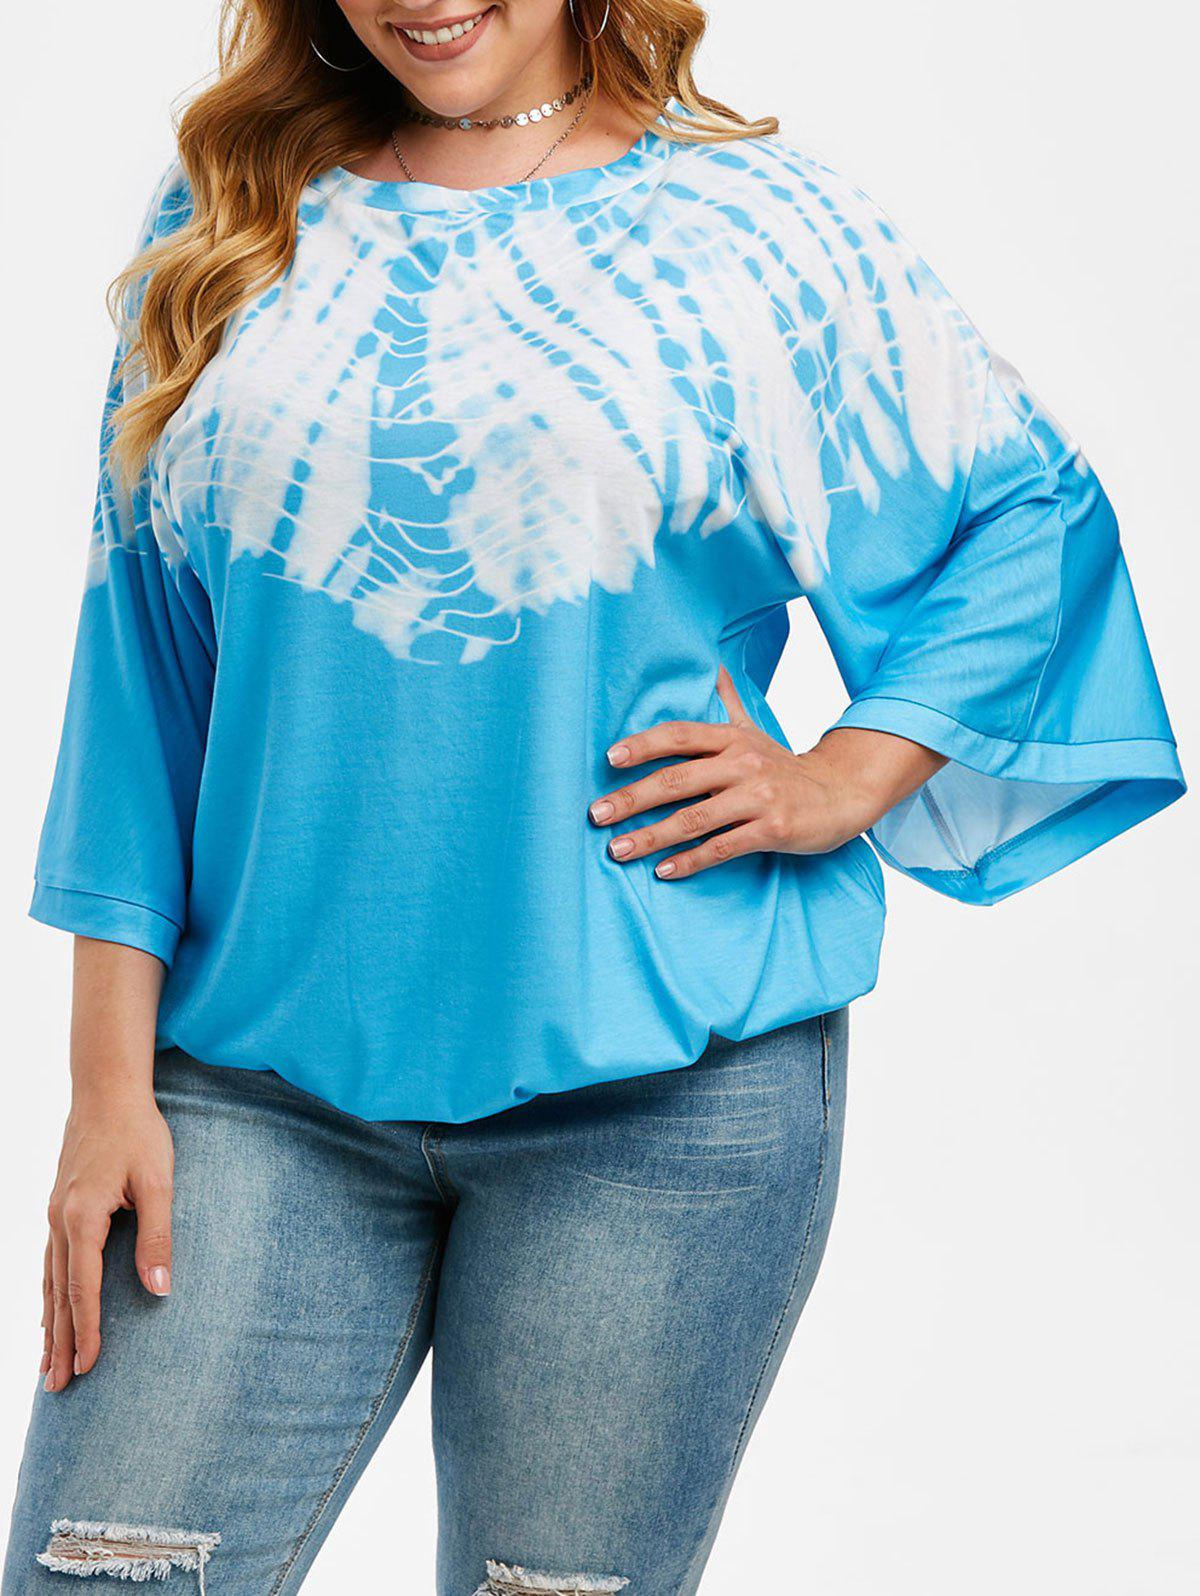 Streak Dye Batwing Sleeve Plus Size Blouson Top - LIGHT BLUE 2XL